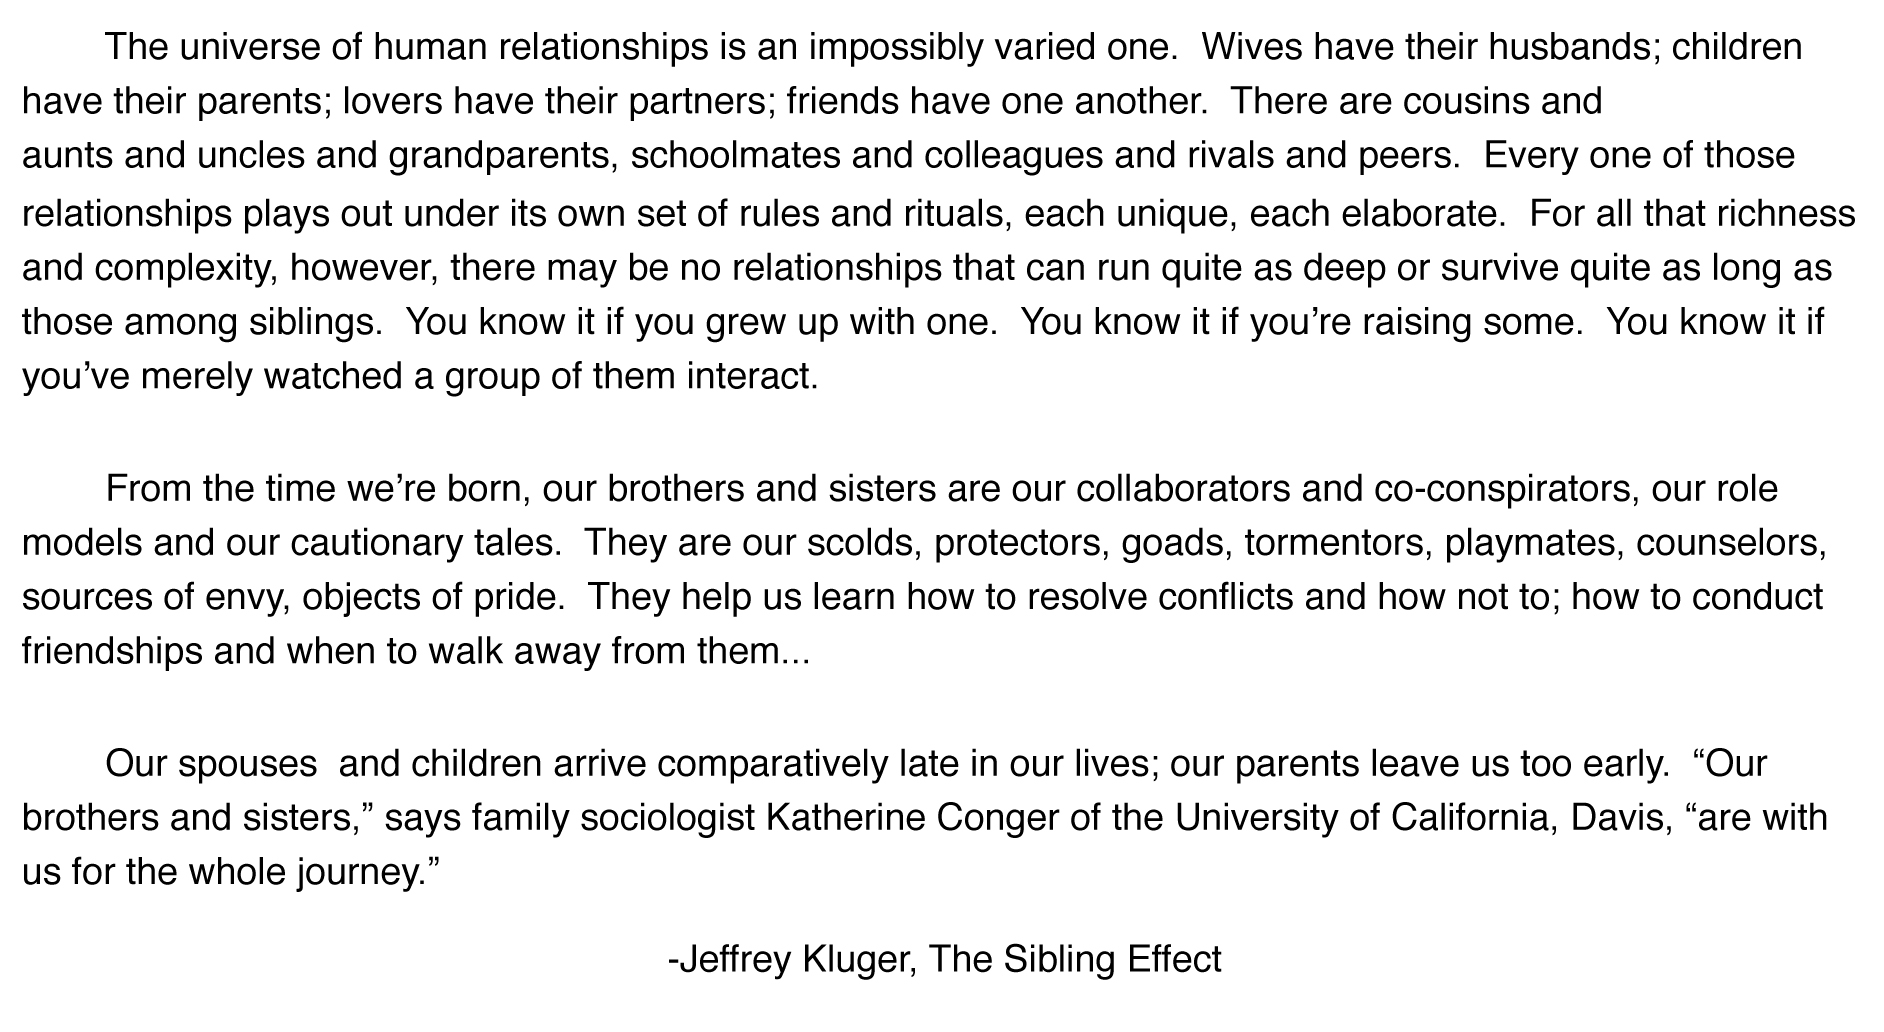 the sibling effect kluger jeffrey